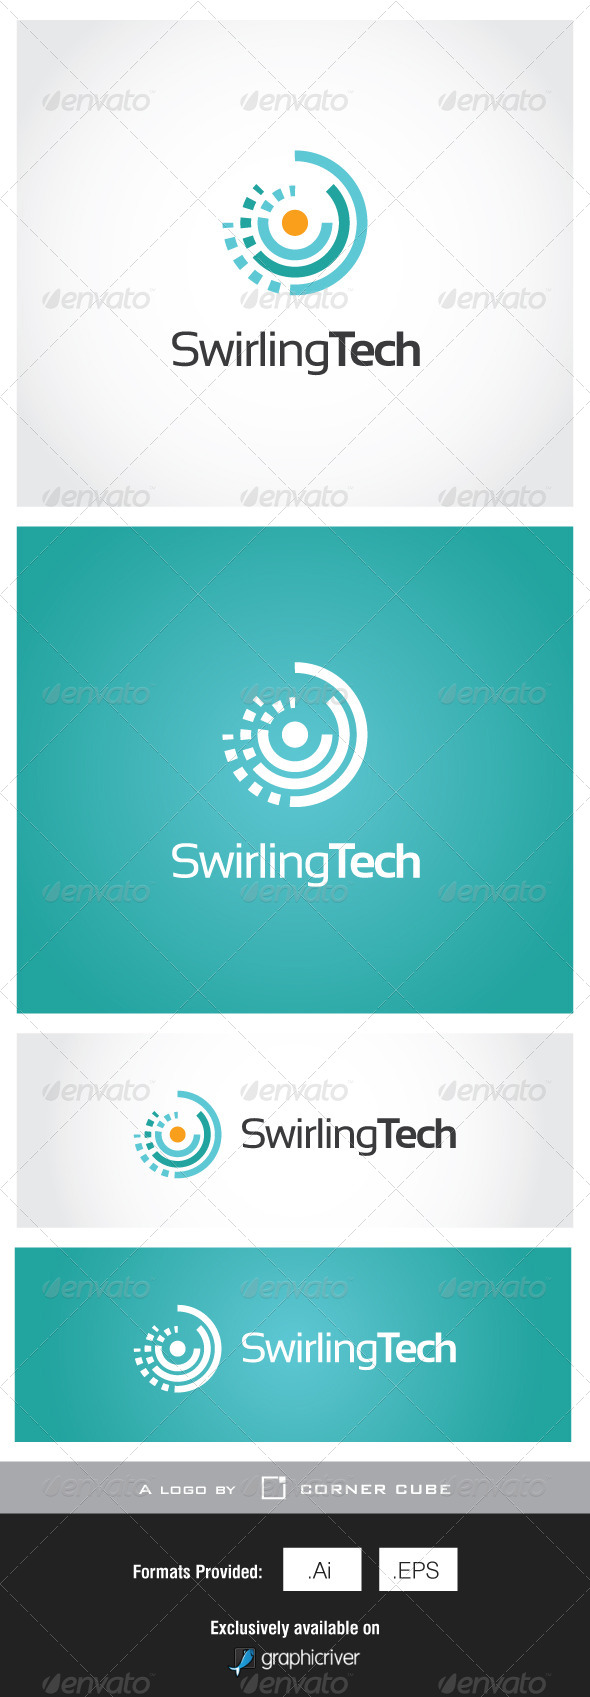 GraphicRiver Swirling Tech Logo 7002927